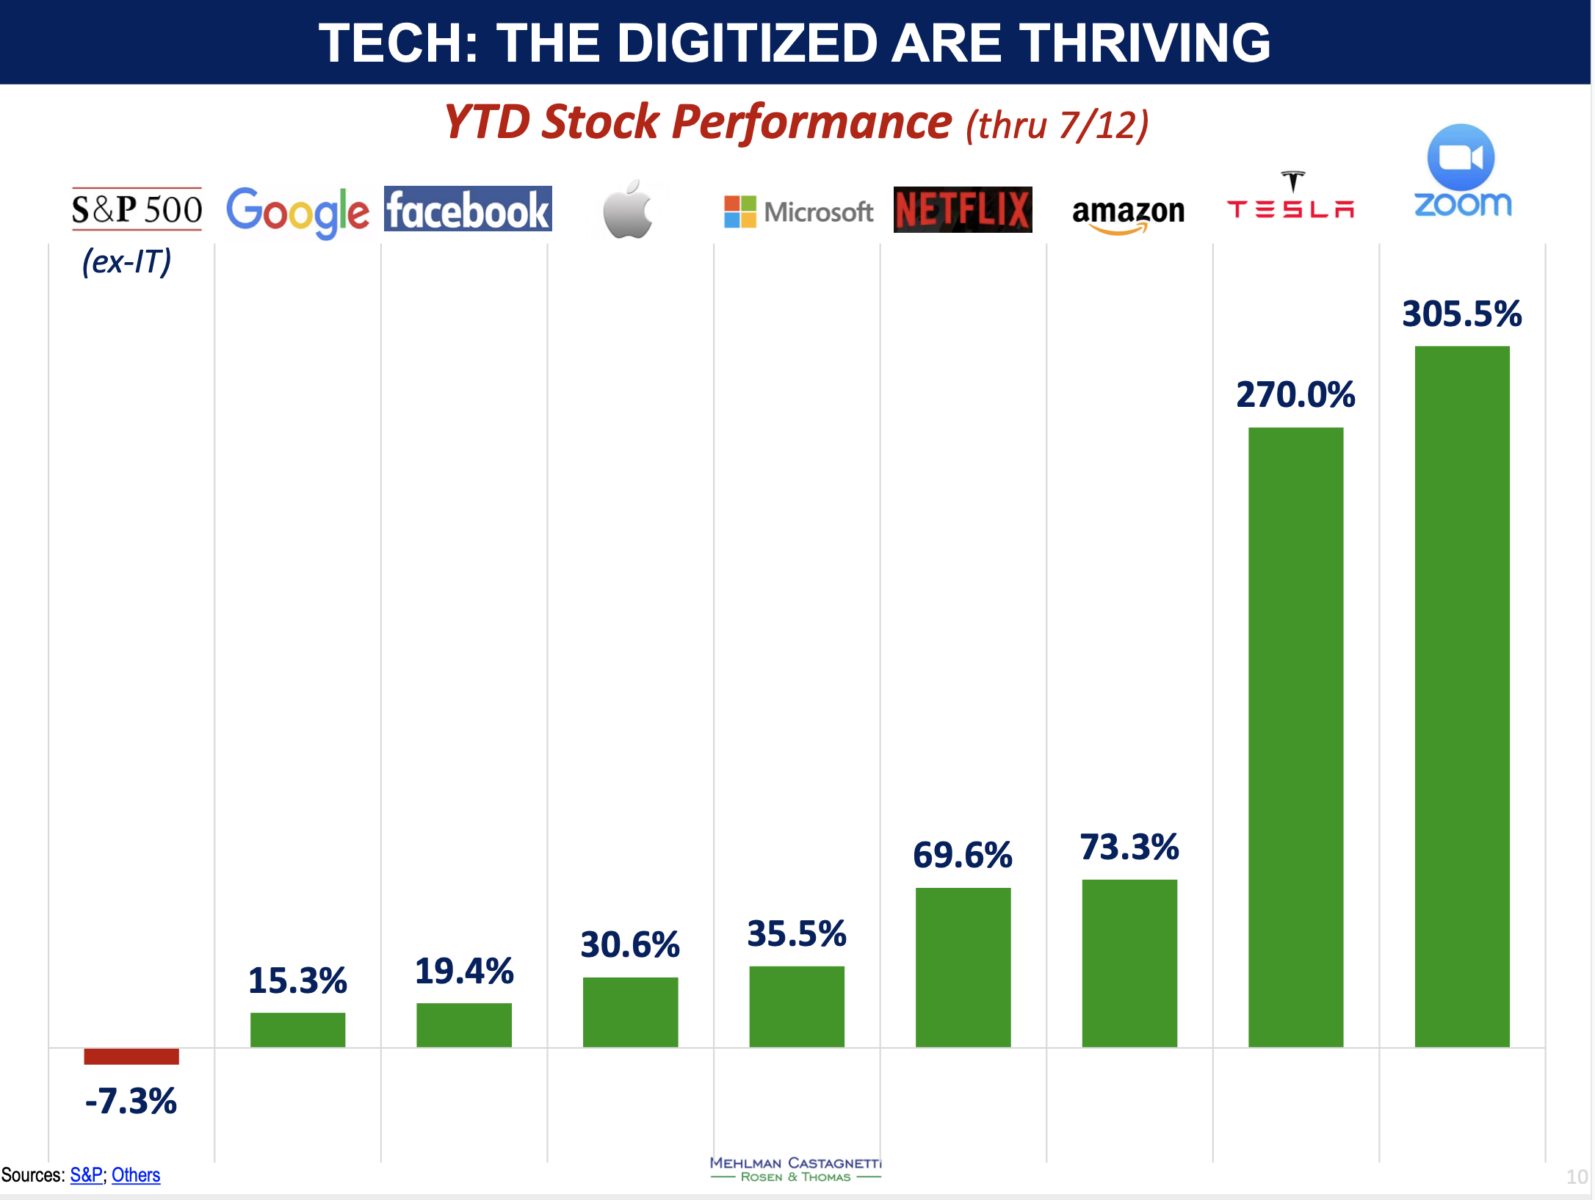 Big Tech Thriving YTD 2